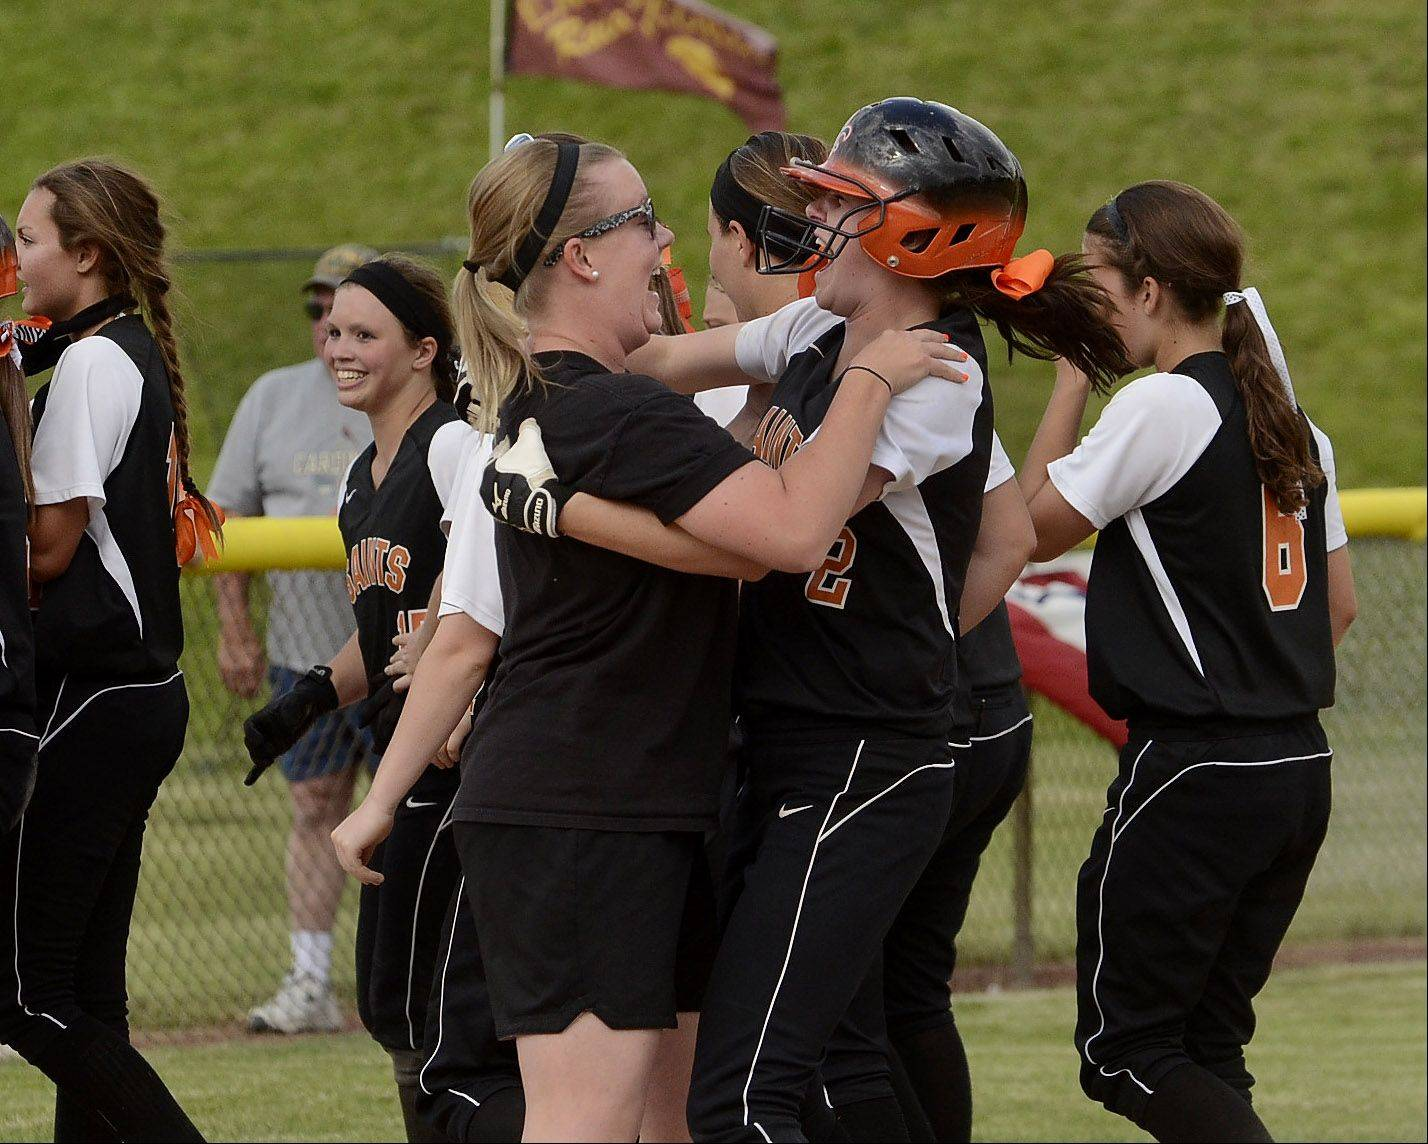 St. Charles East assistant coach Sarah Seward, left, embraces Olivia Lorenzini, after her 2-run double against Barrington in Friday's Class 4A state semifinal softball game in East Peoria.